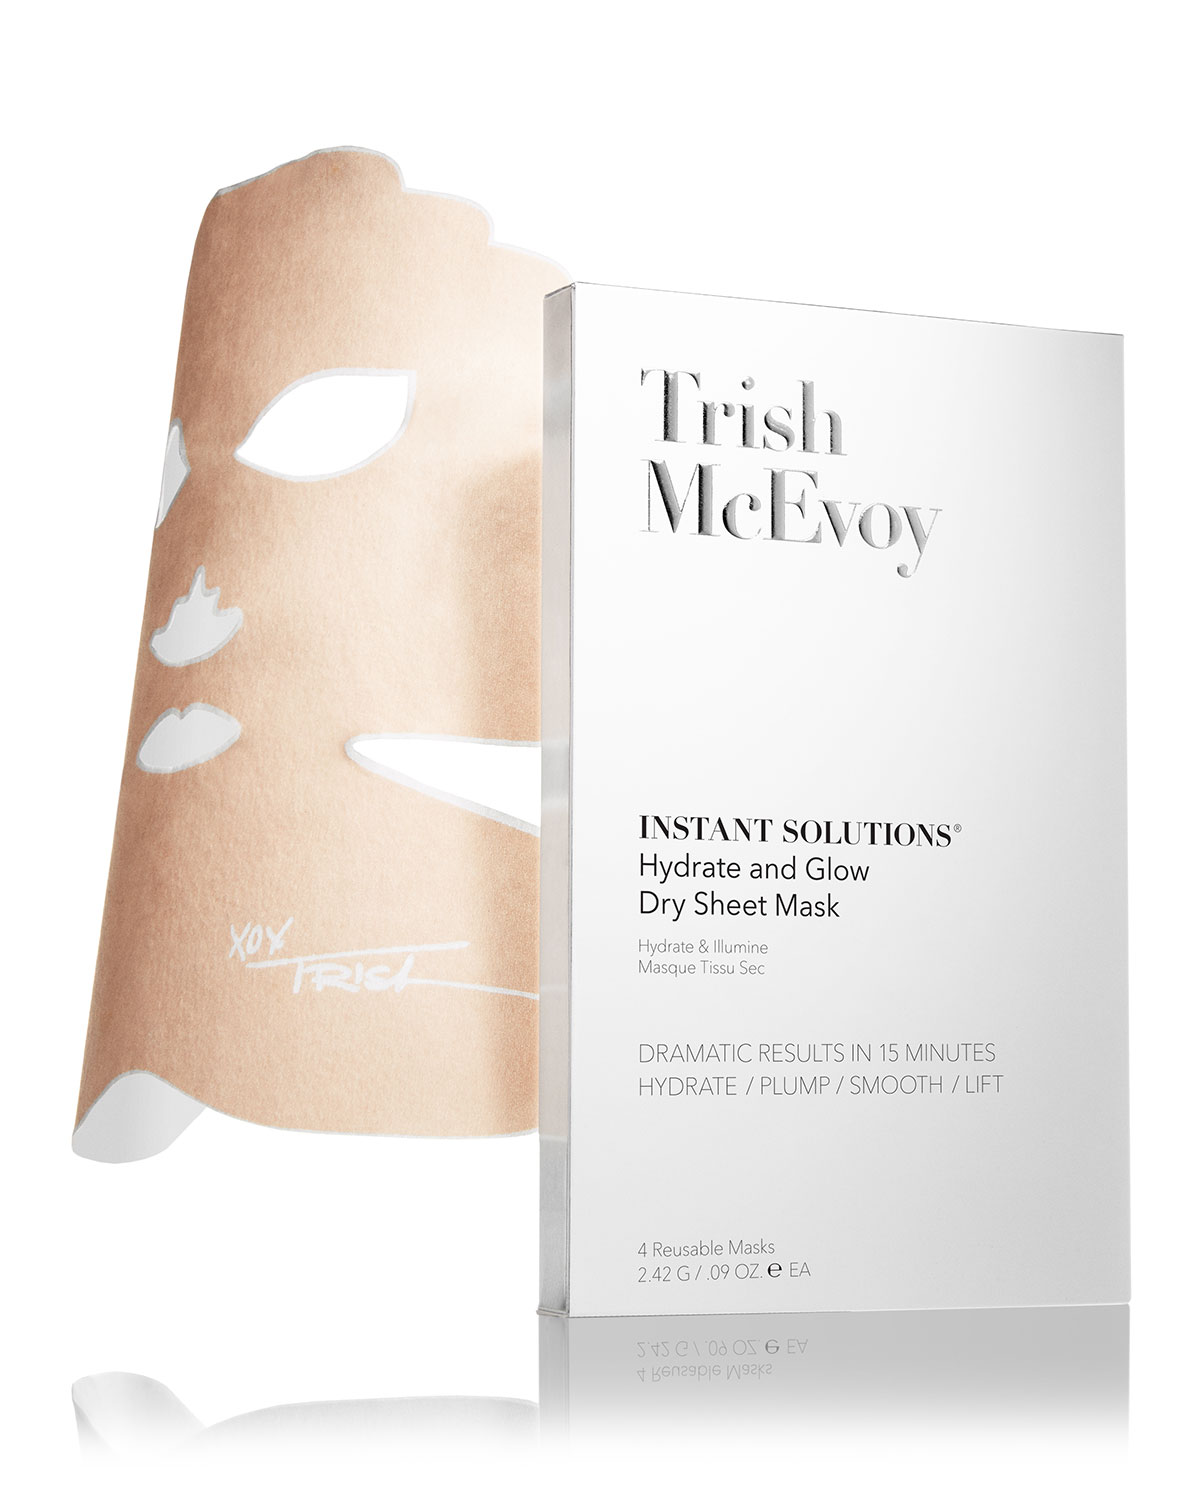 Trish Mcevoy INSTANT SOLUTIONS HYDRATE & GLOW DRY SHEET MASK, 4 PACK